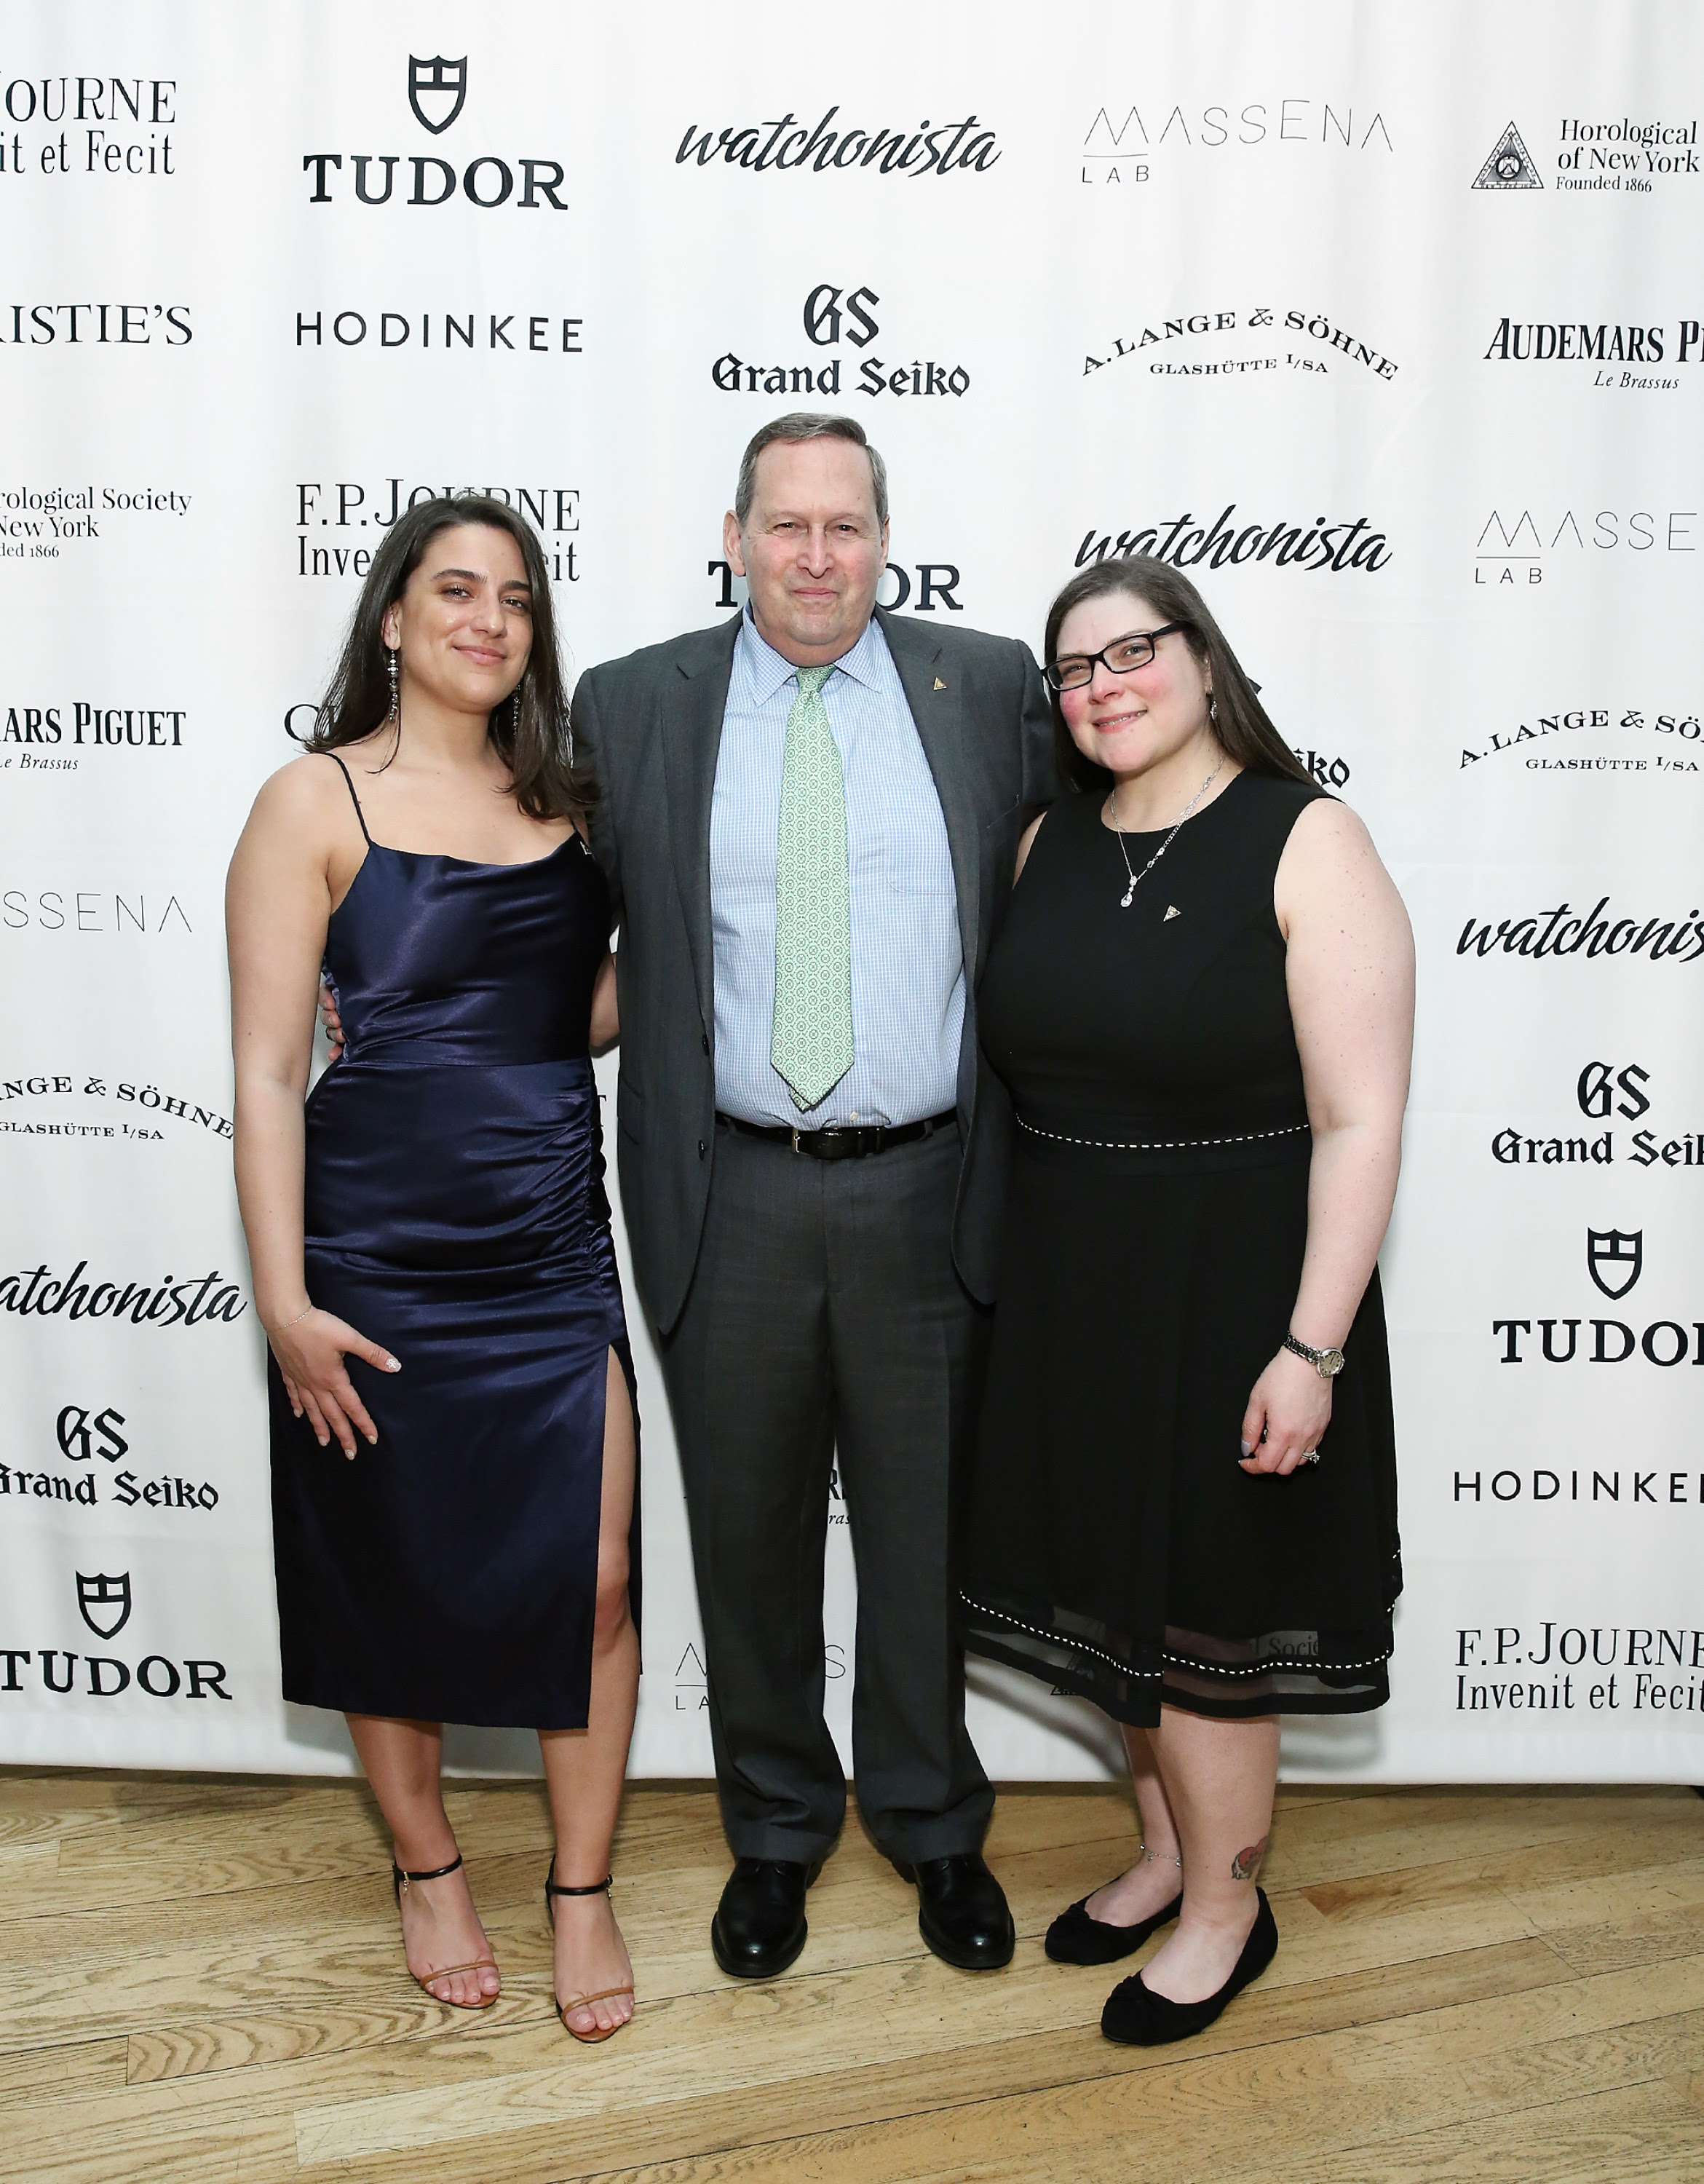 HSNY's growing staff celebrates at the 2019 Gala & Charity Auction. (L-R) Carolina Navarro, Director of Public Relations & Marketing; Ed Hydeman, Executive Director; and Rhonda Critelli, Executive Assistant.